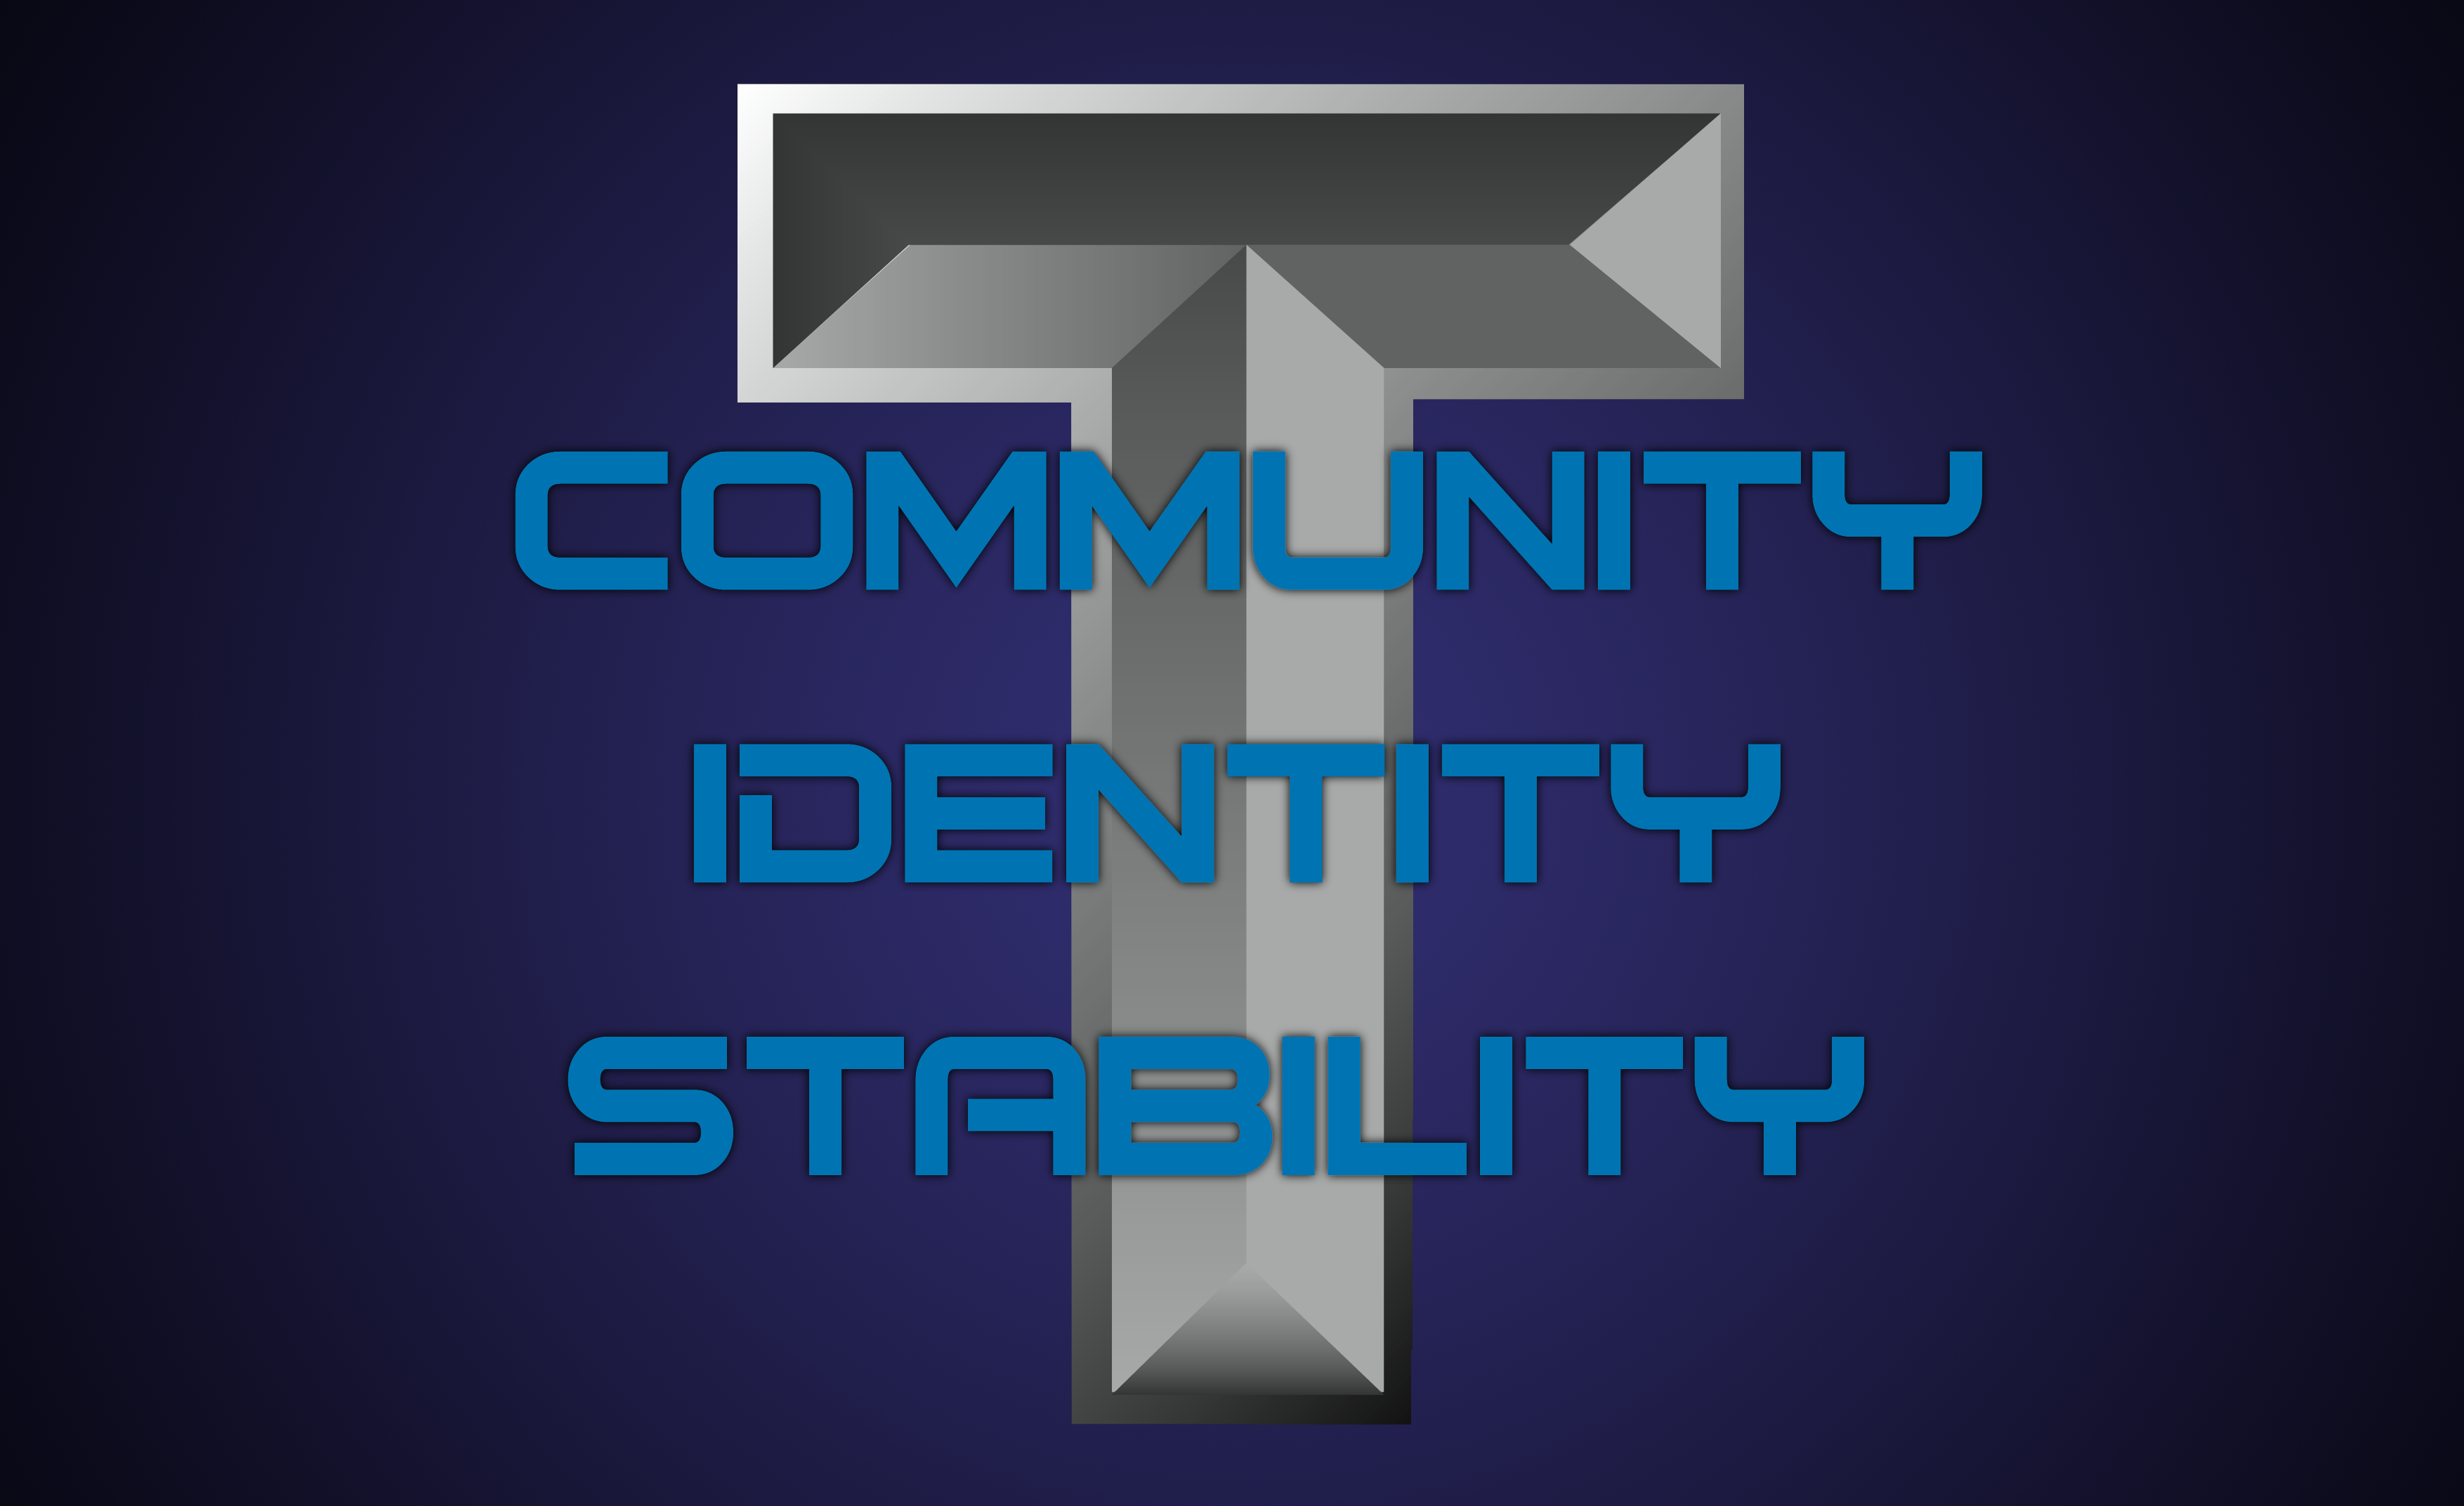 community identity stability I think that these words, community, identity, and stability have double meanings, especially in the context of the hatchery the people who work there are creating community, identity, and stability, by forcing it on children in an amoral way.